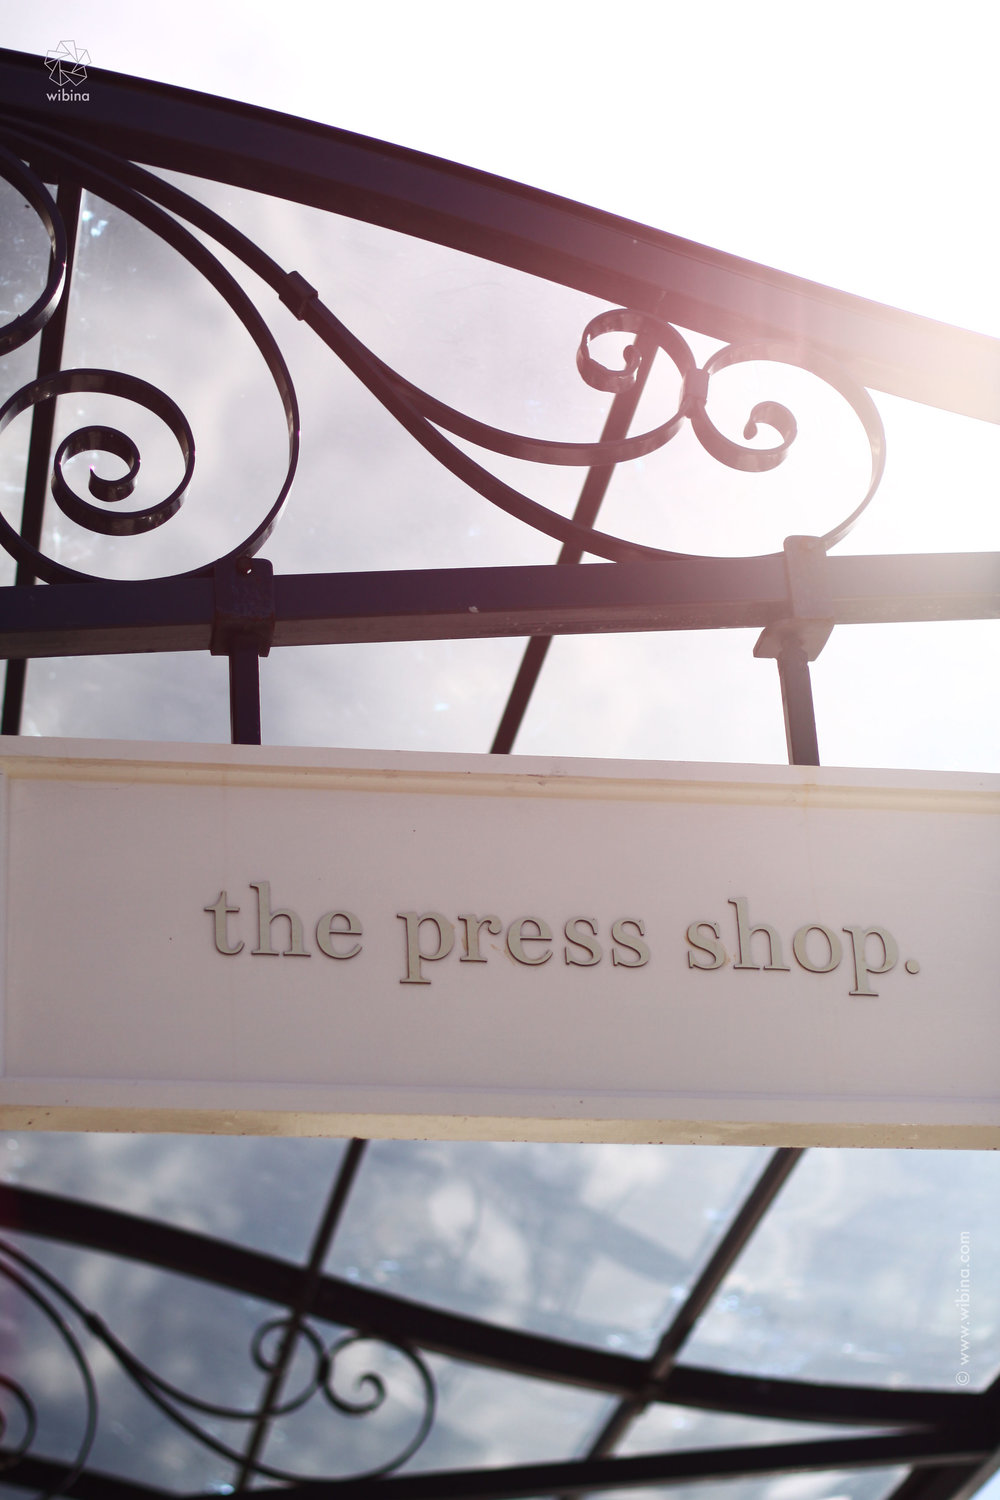 Wibina-Bowral-The_Press_Shop_11.jpg